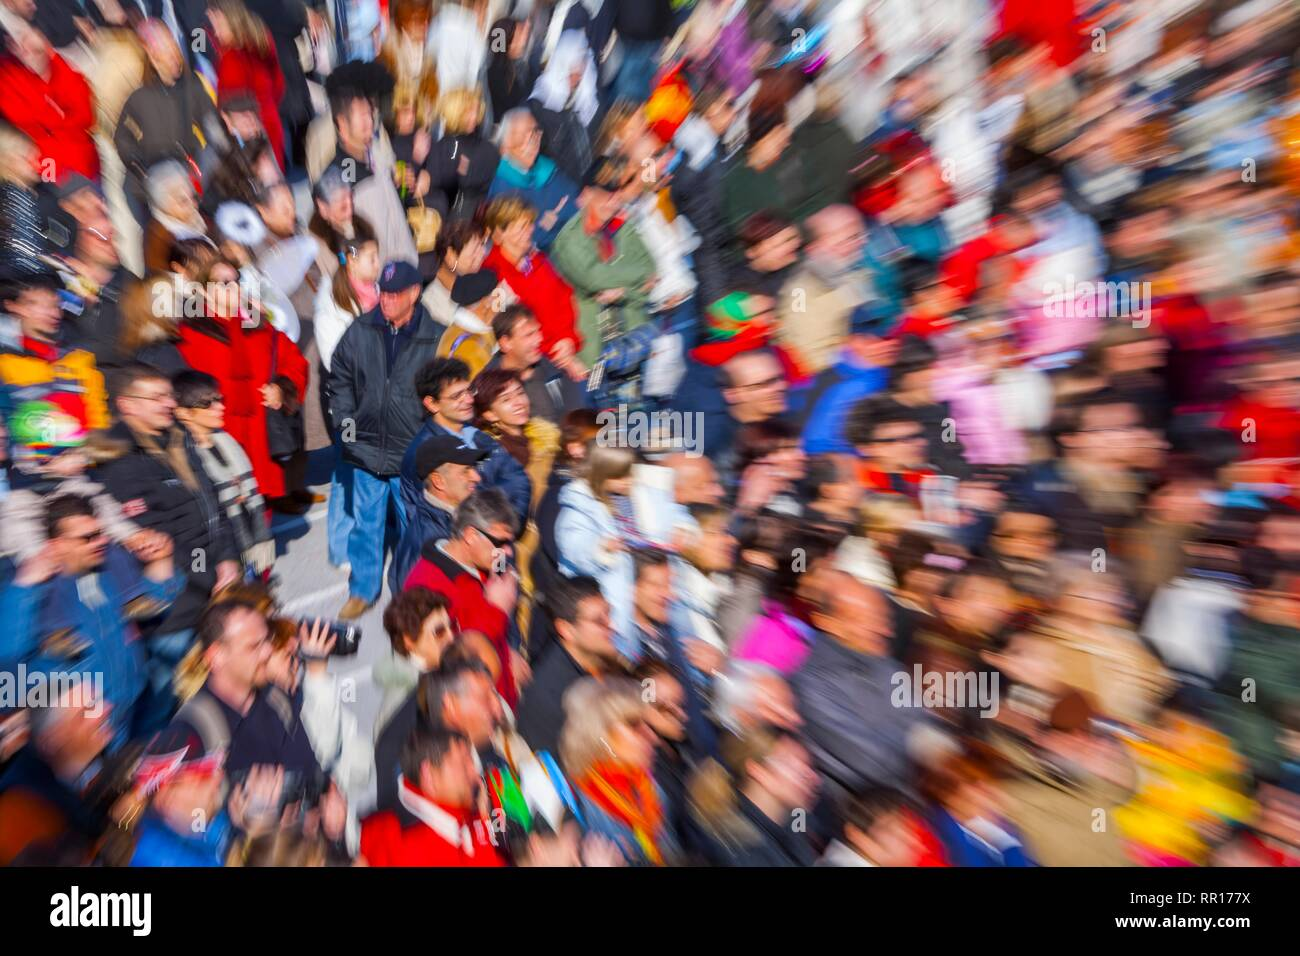 People public crowd blur isolated style - Stock Image